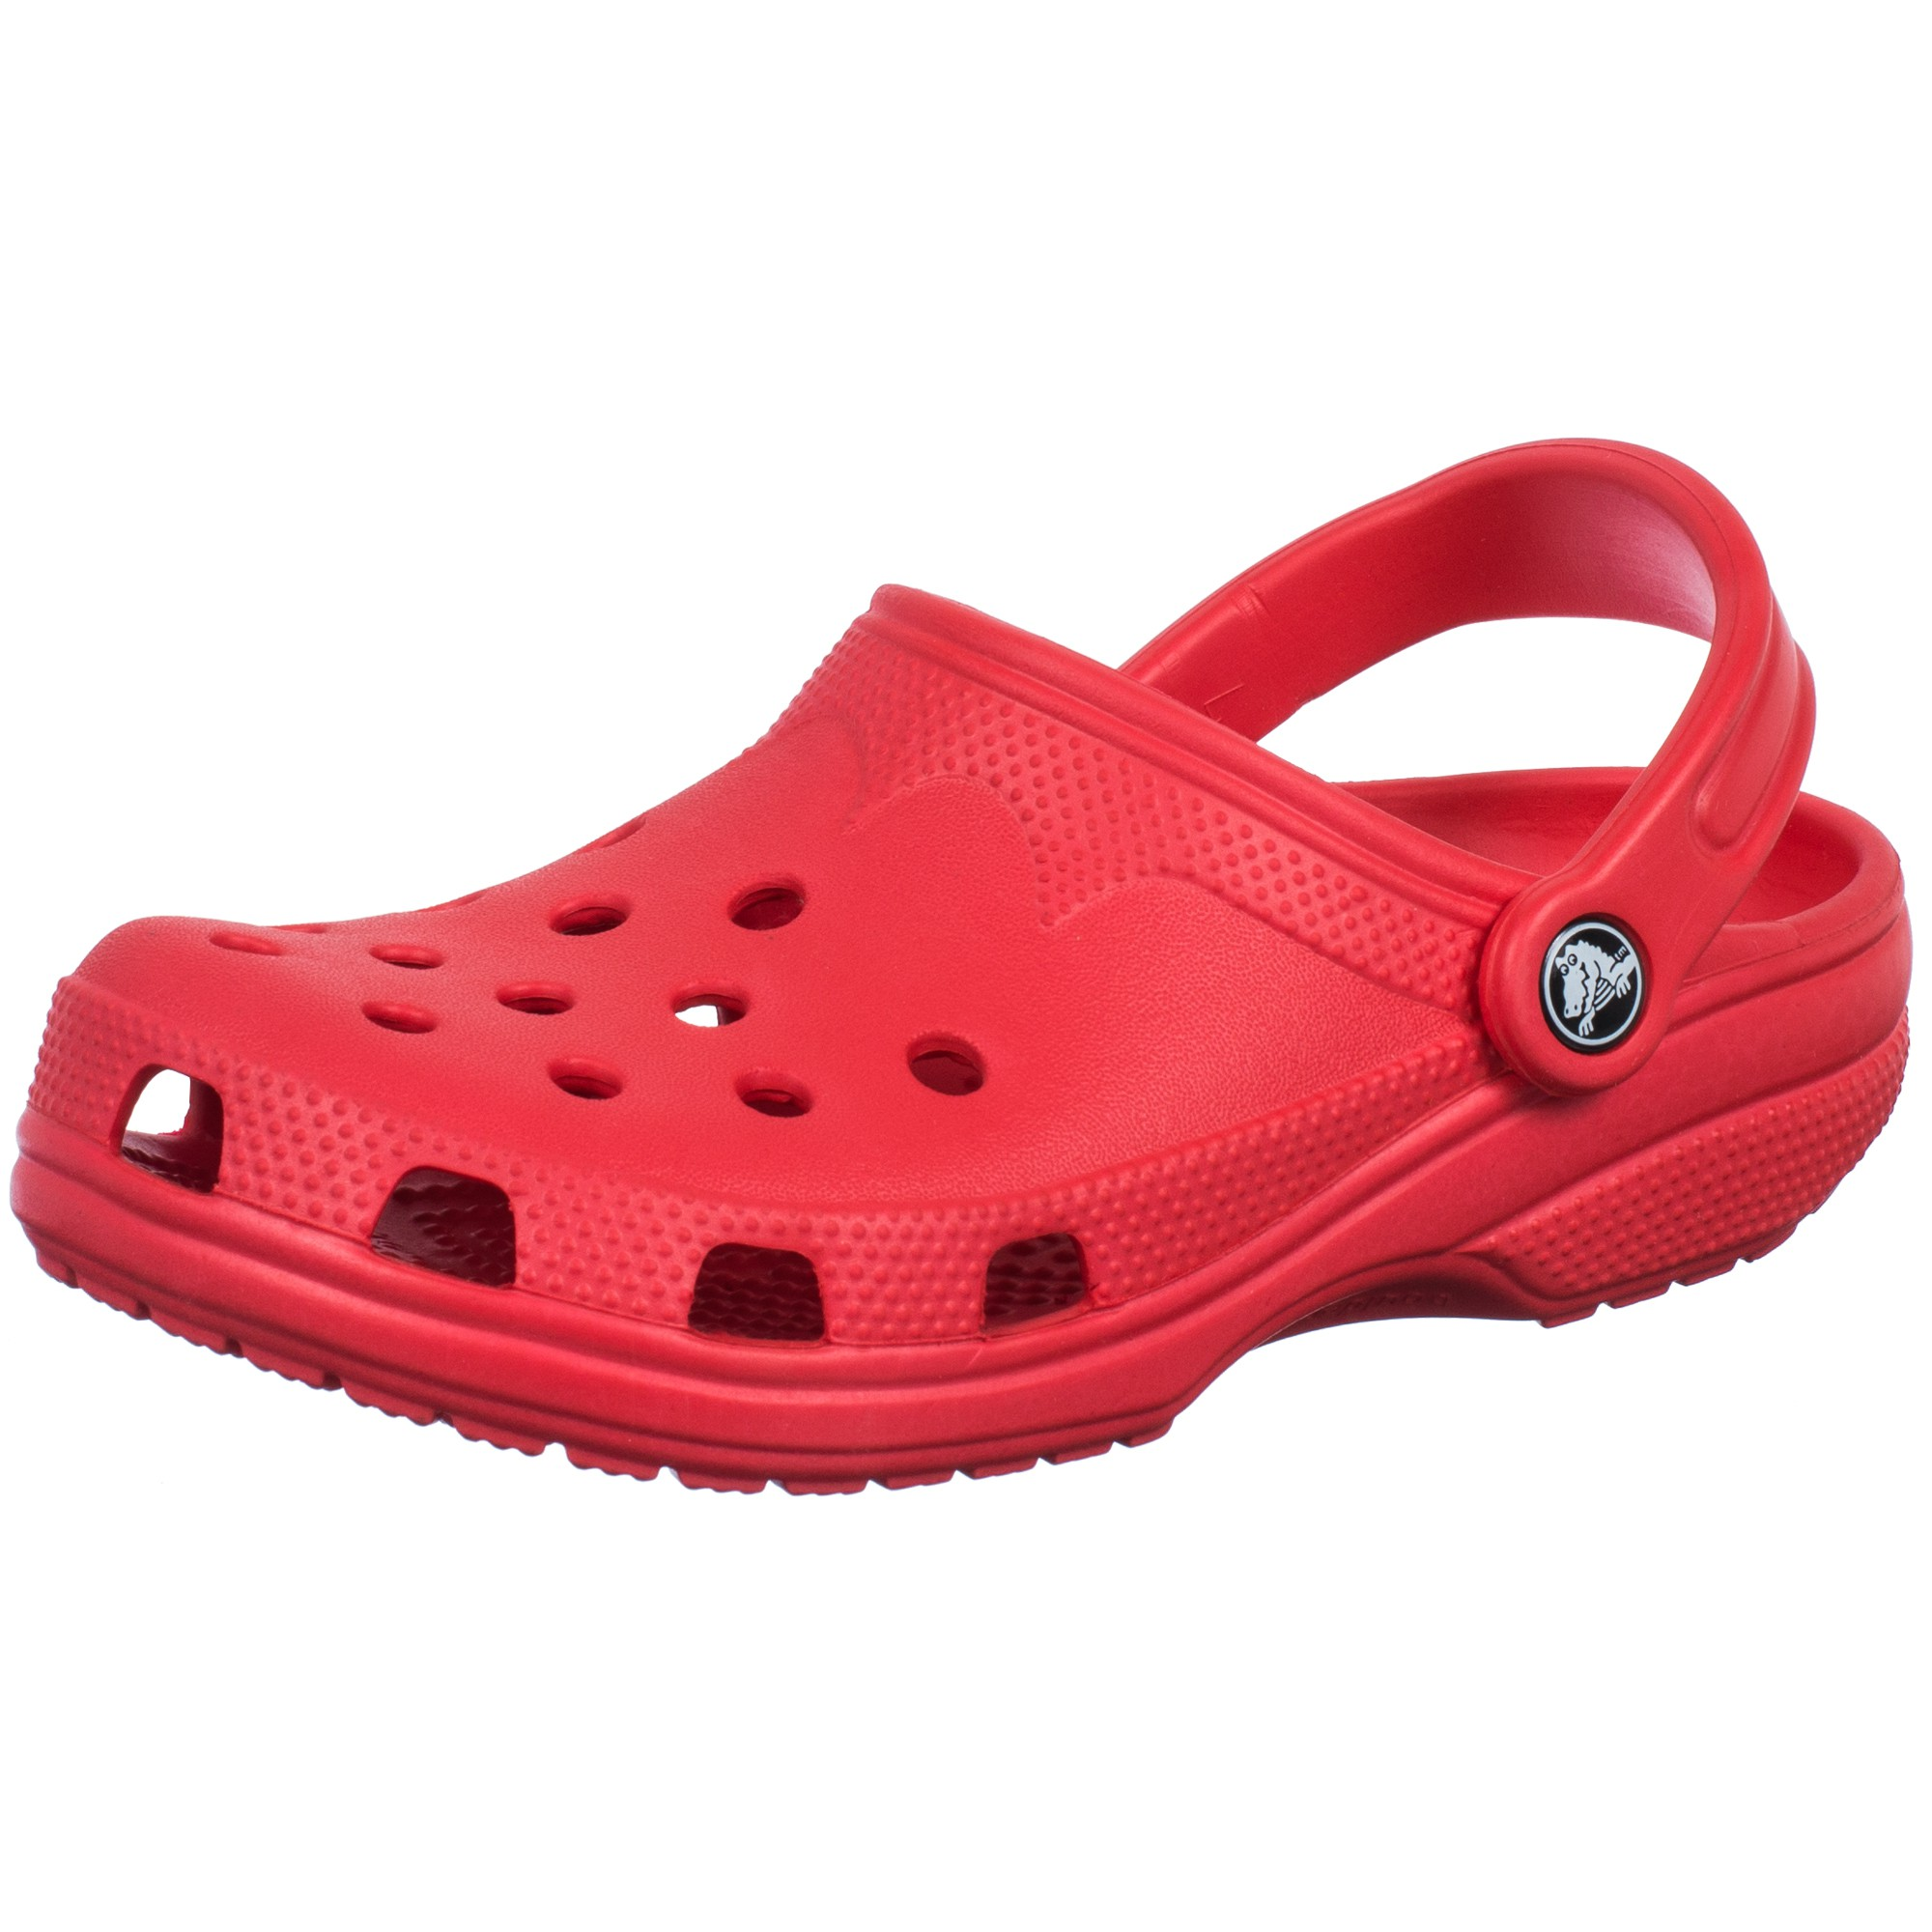 Crocs Shipping/ Return Policy: Crocs offers risk free shopping, so shop Crocs with confidence. Crocs offers four different shipping methods, so whether you want your product the next day or prefer to wait for it a couple more days, you are covered.